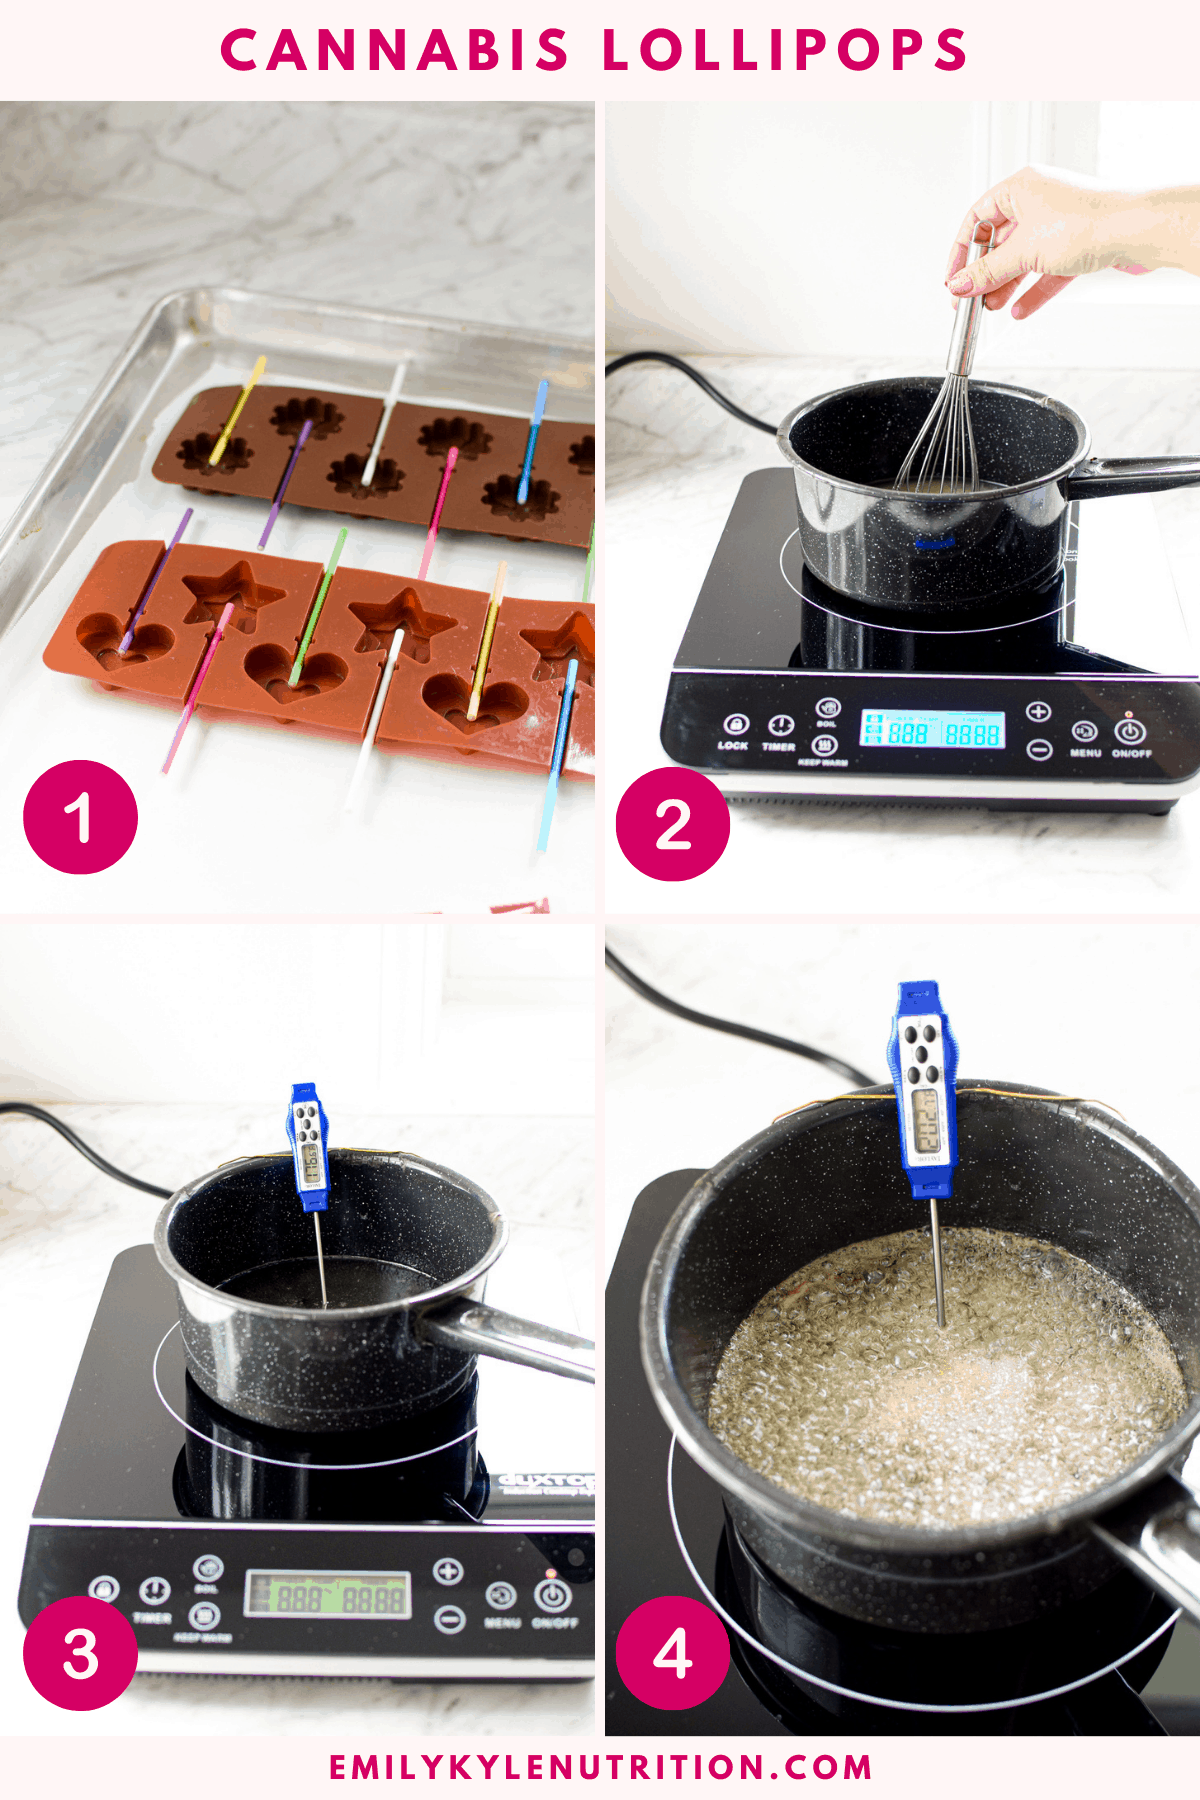 A 4 step collage showing the first four steps in making lollipops. 1- setting up your work station, 2 - stirring the ingredients, 3- the pan at 260